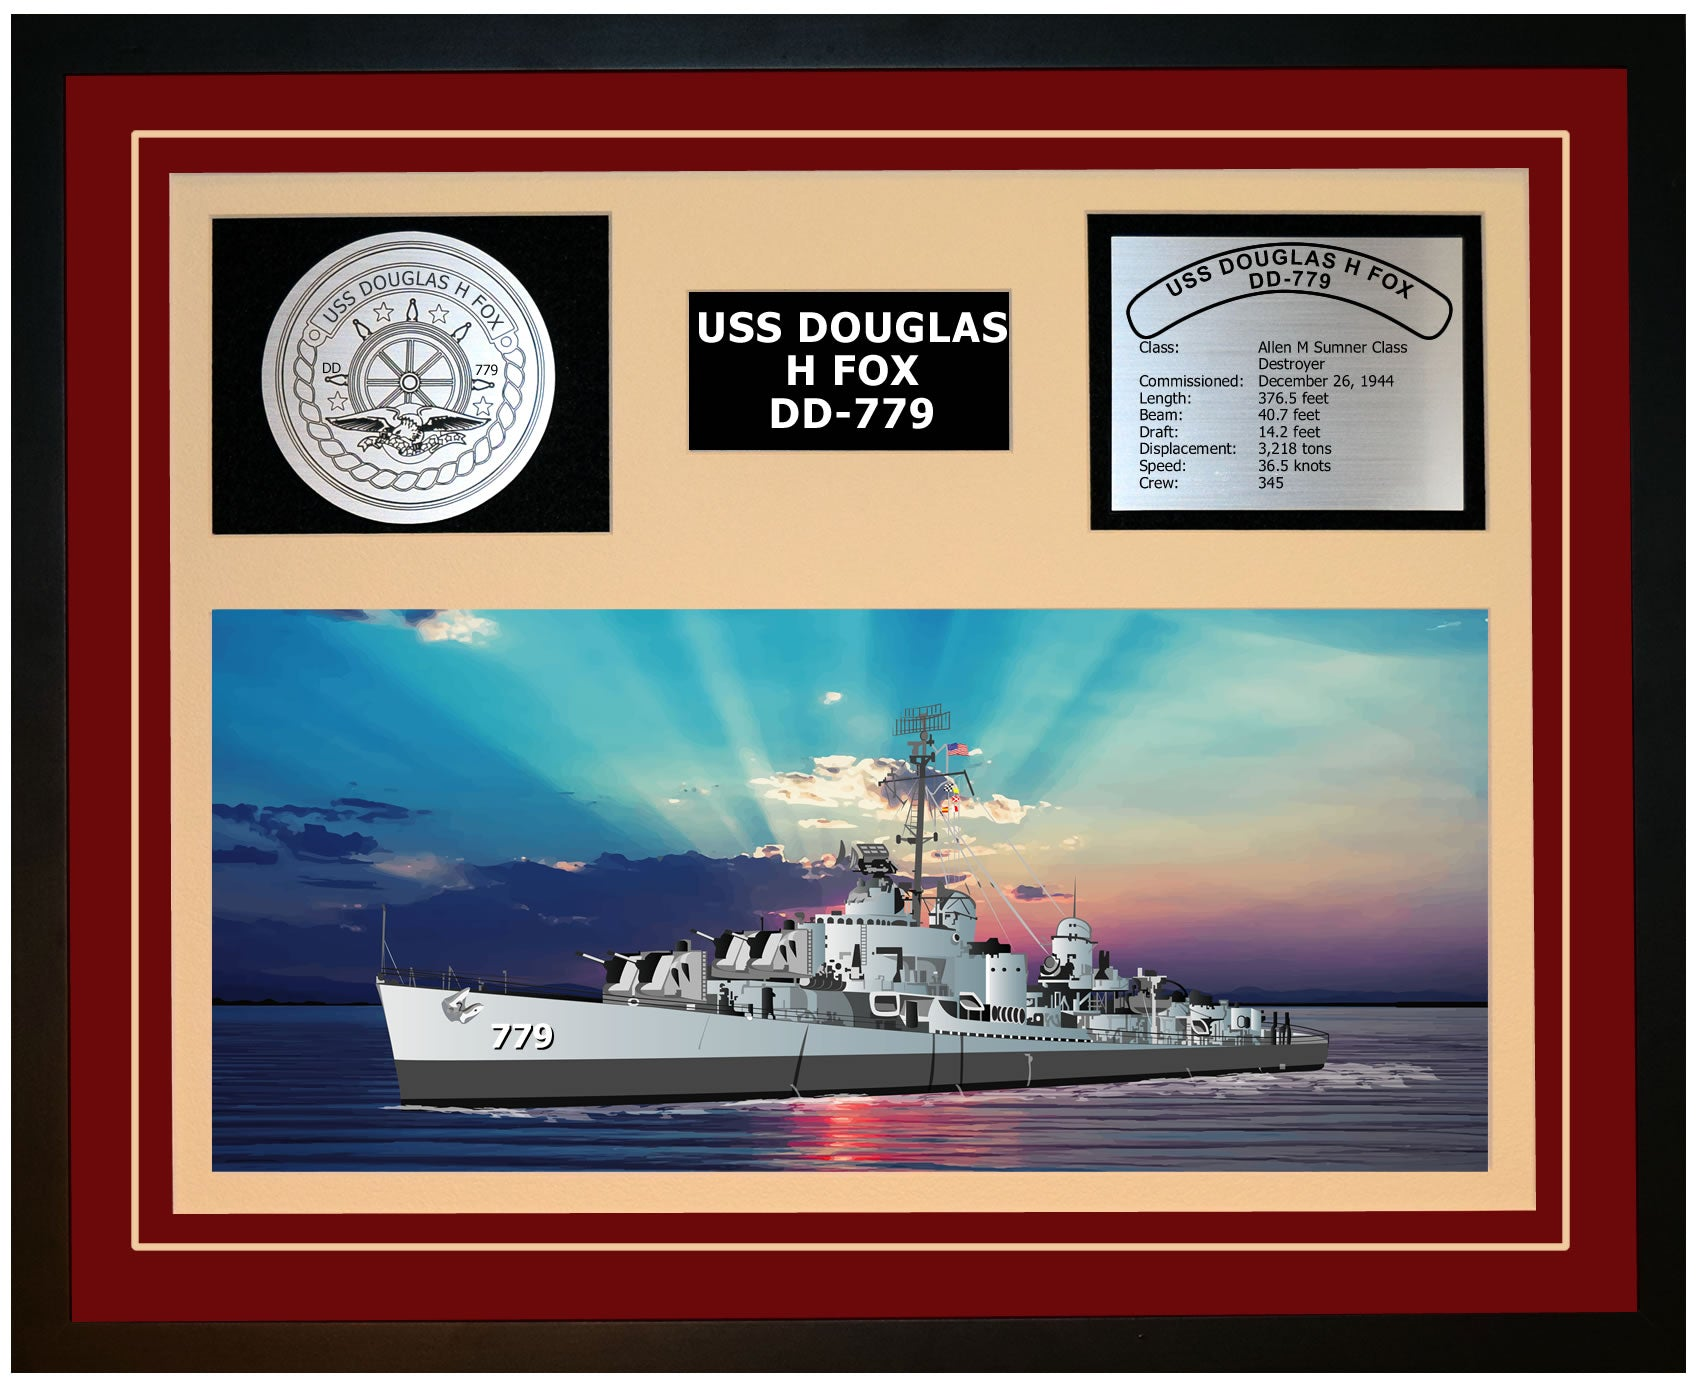 USS DOUGLAS H FOX DD-779 Framed Navy Ship Display Burgundy